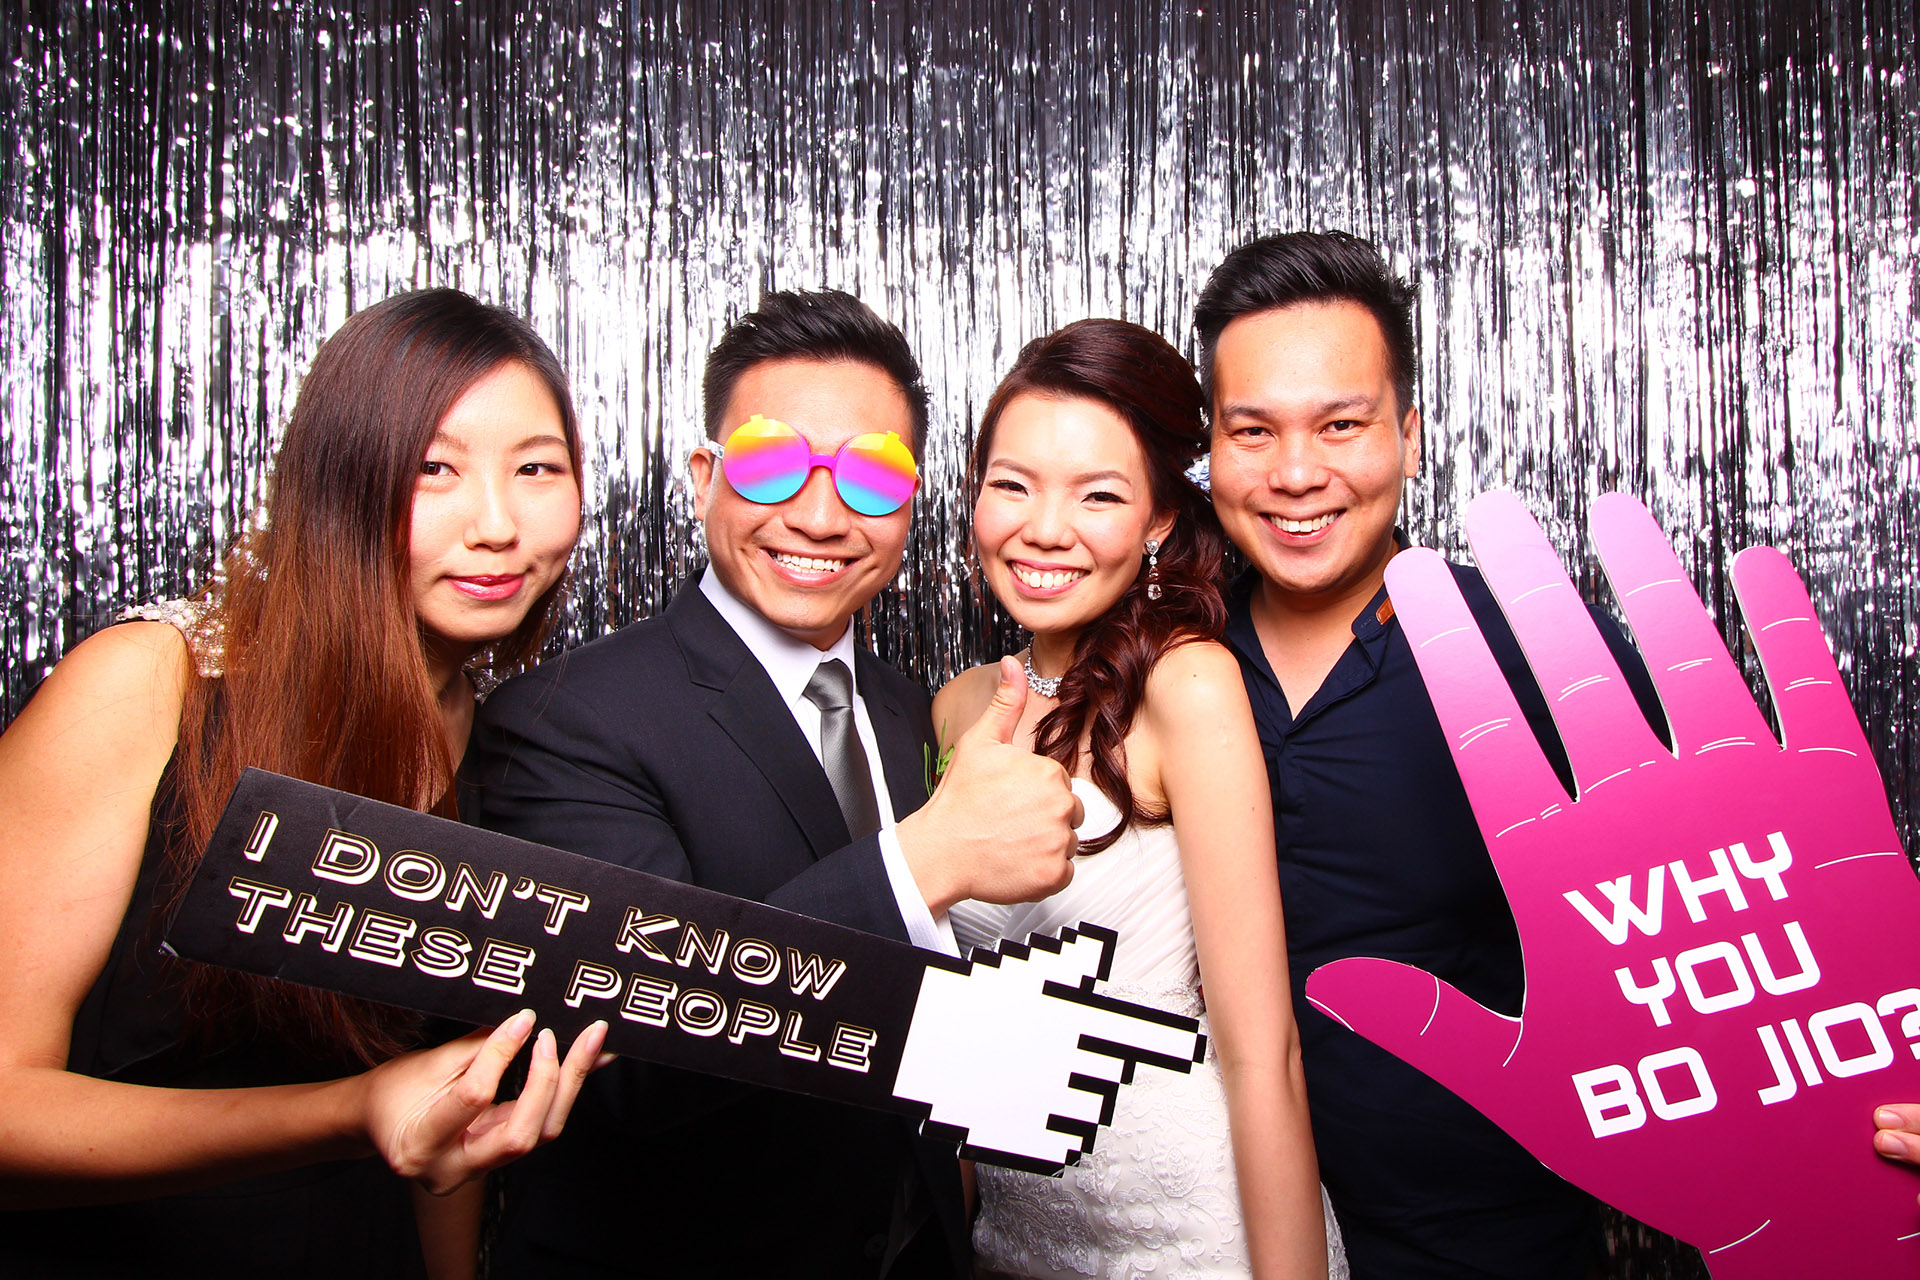 Fourstops • Singapore Photobooth • Silver Glitter Backdrop